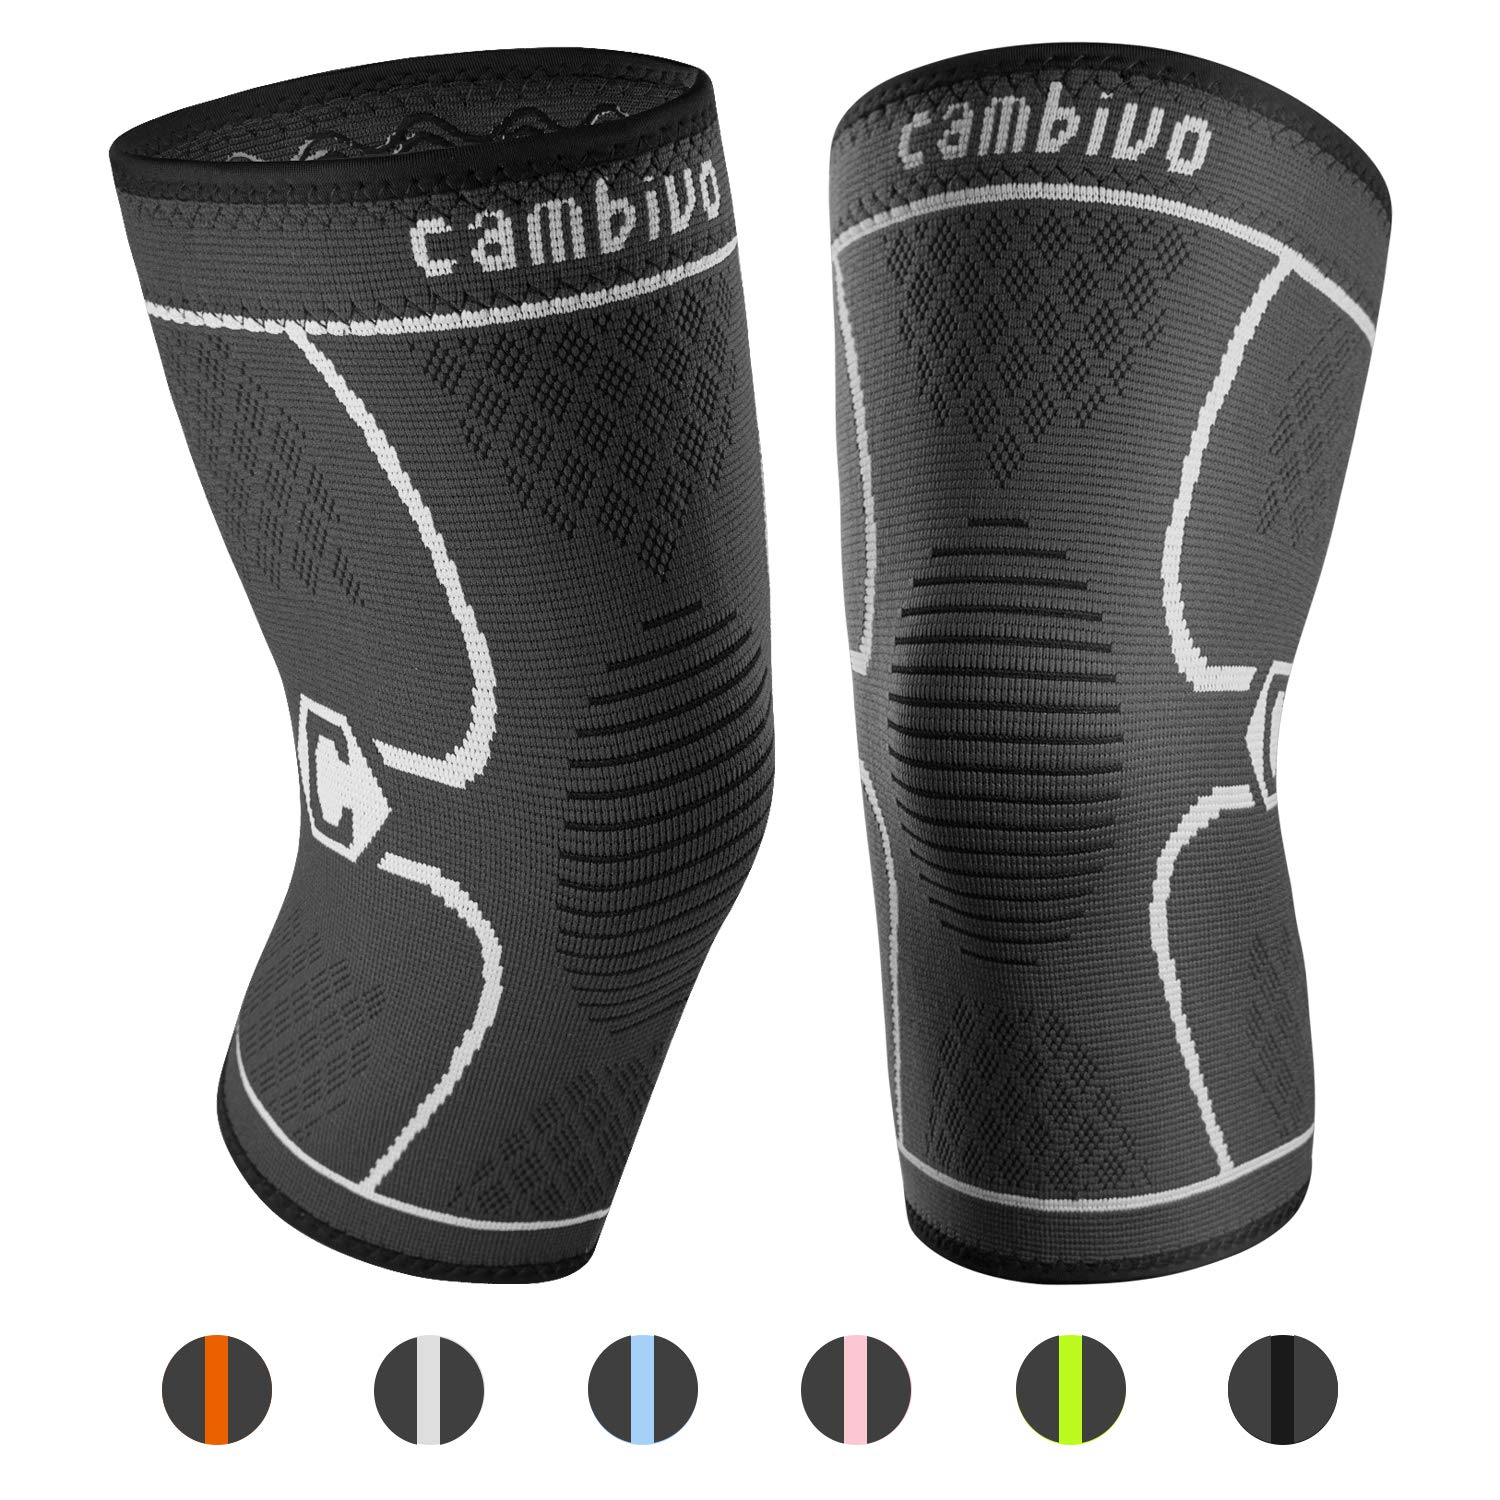 CAMBIVO 2 Pack Knee Brace, Knee Compression Sleeve Support for Running, Arthritis, ACL, Meniscus Tear, Sports, Joint Pain Relief and Injury Recovery (Small, Black/Gray)